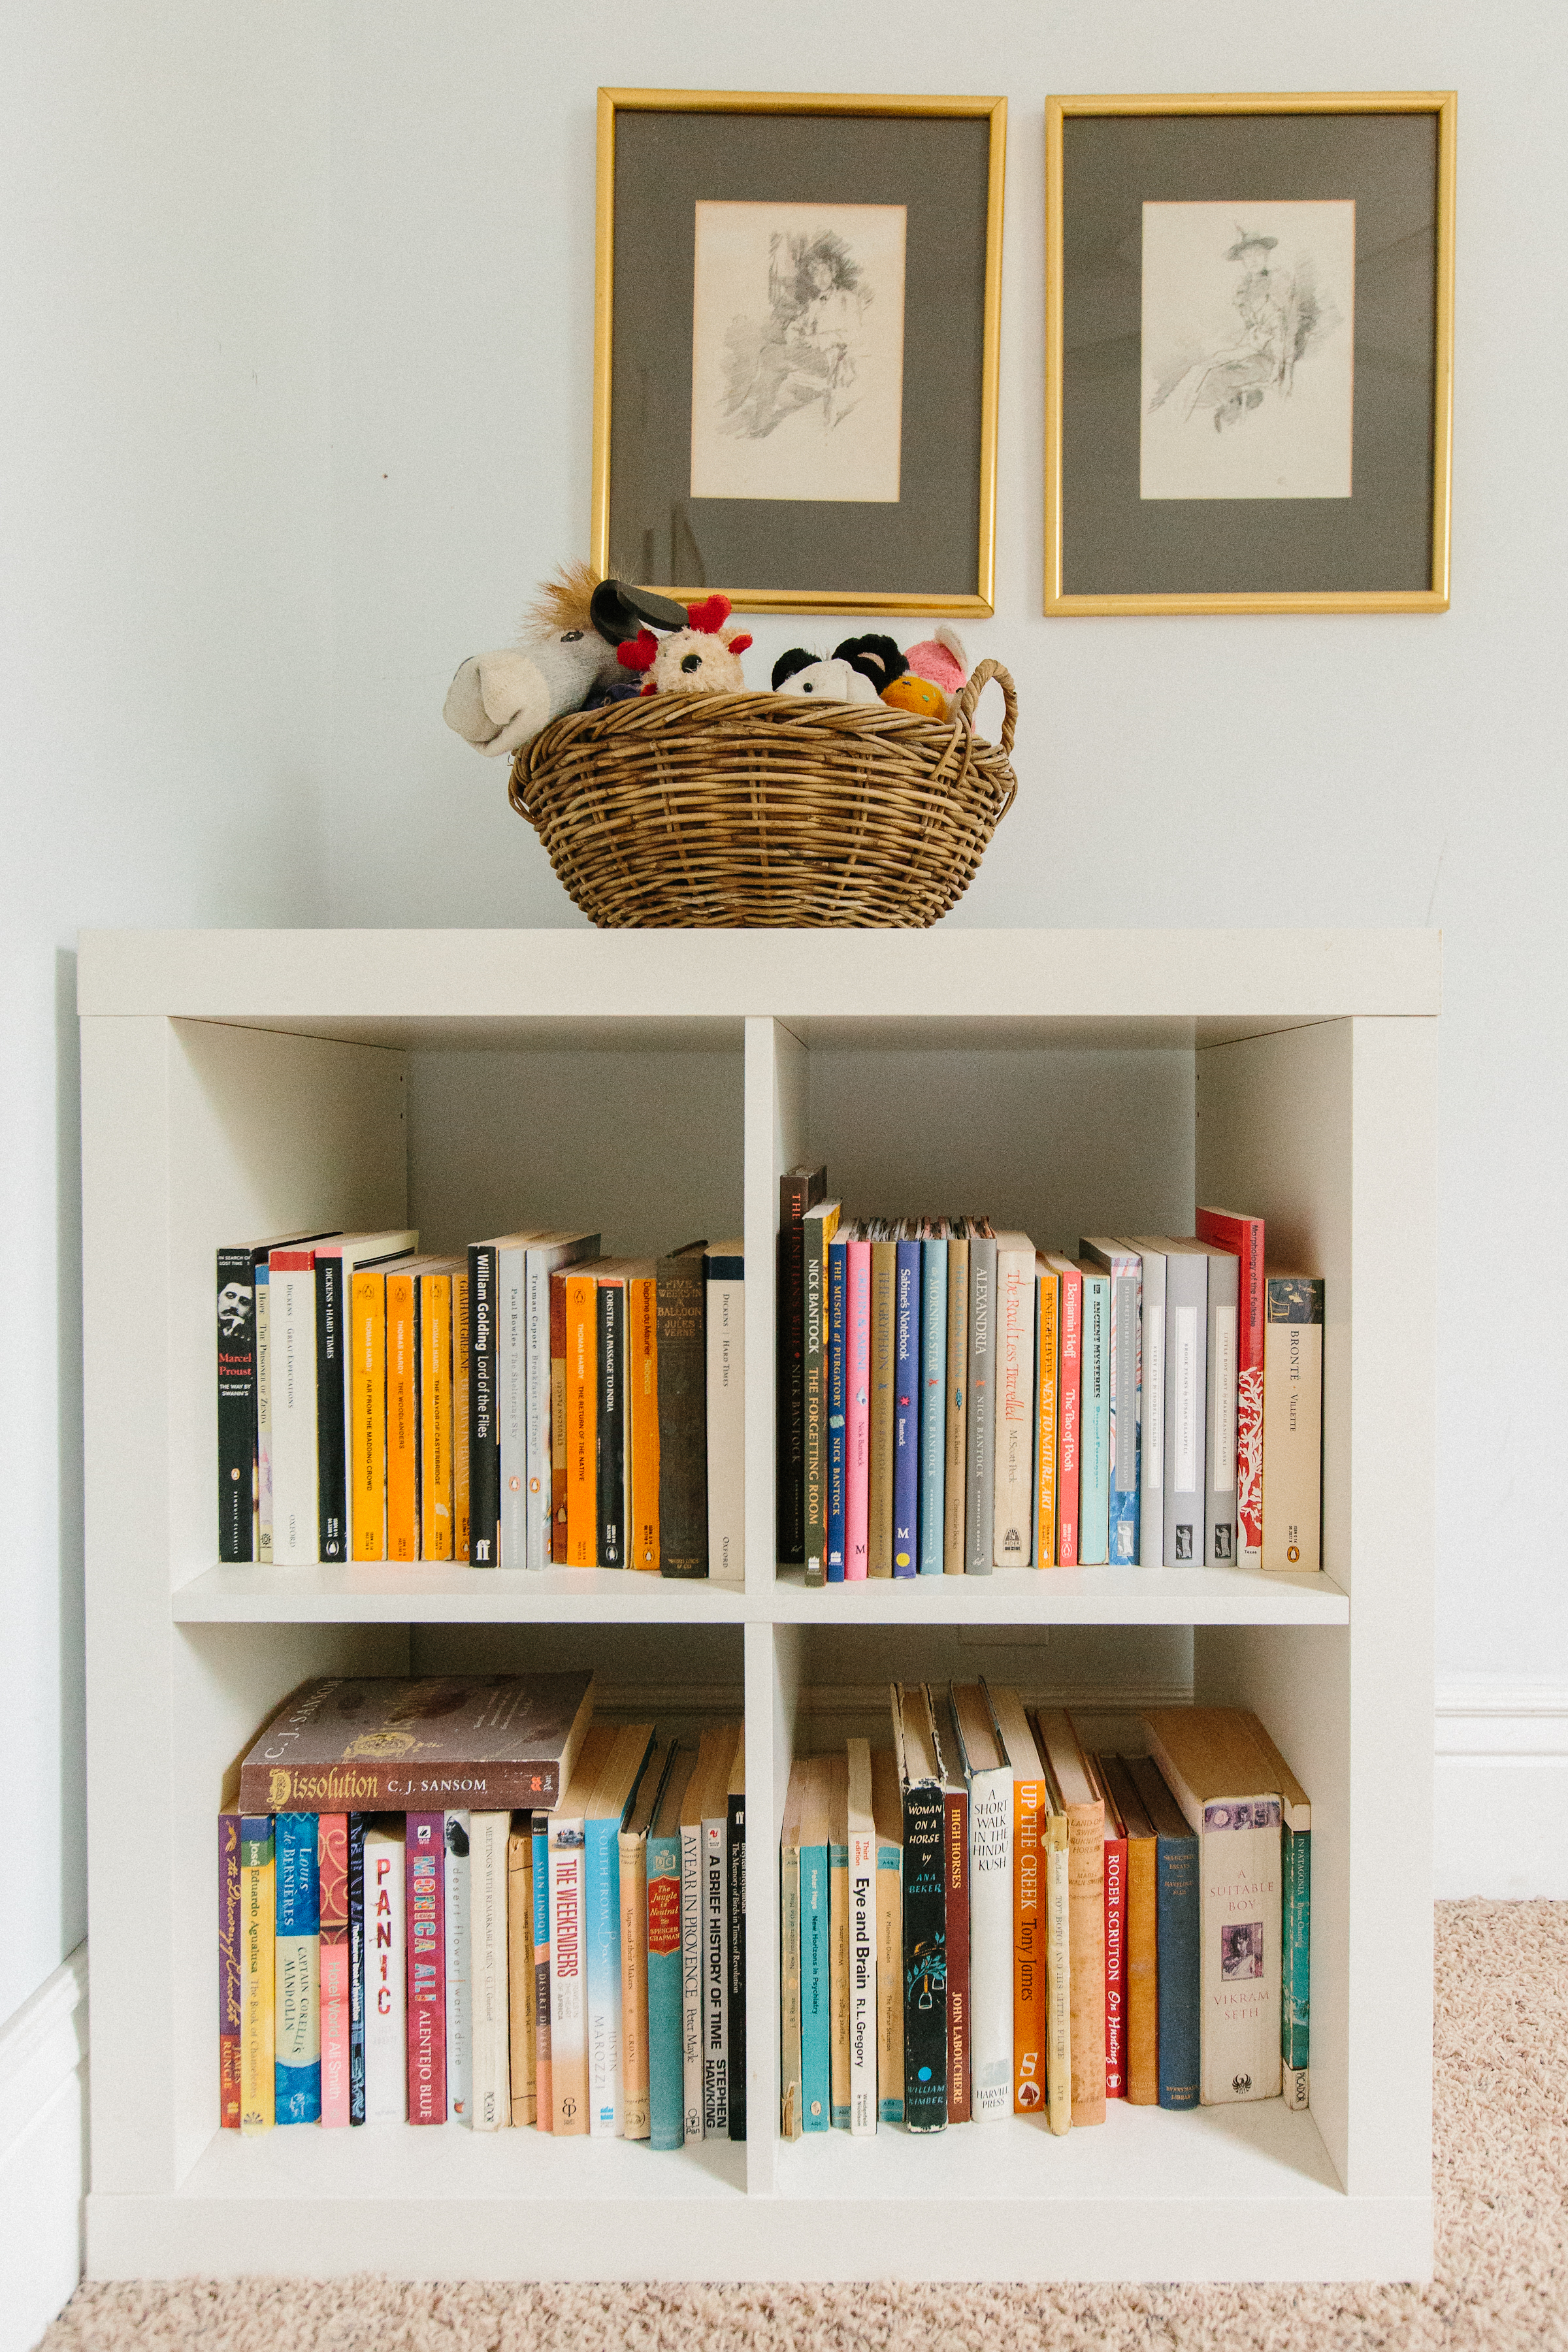 As with most of Hannah's home, books and art are ever-present.